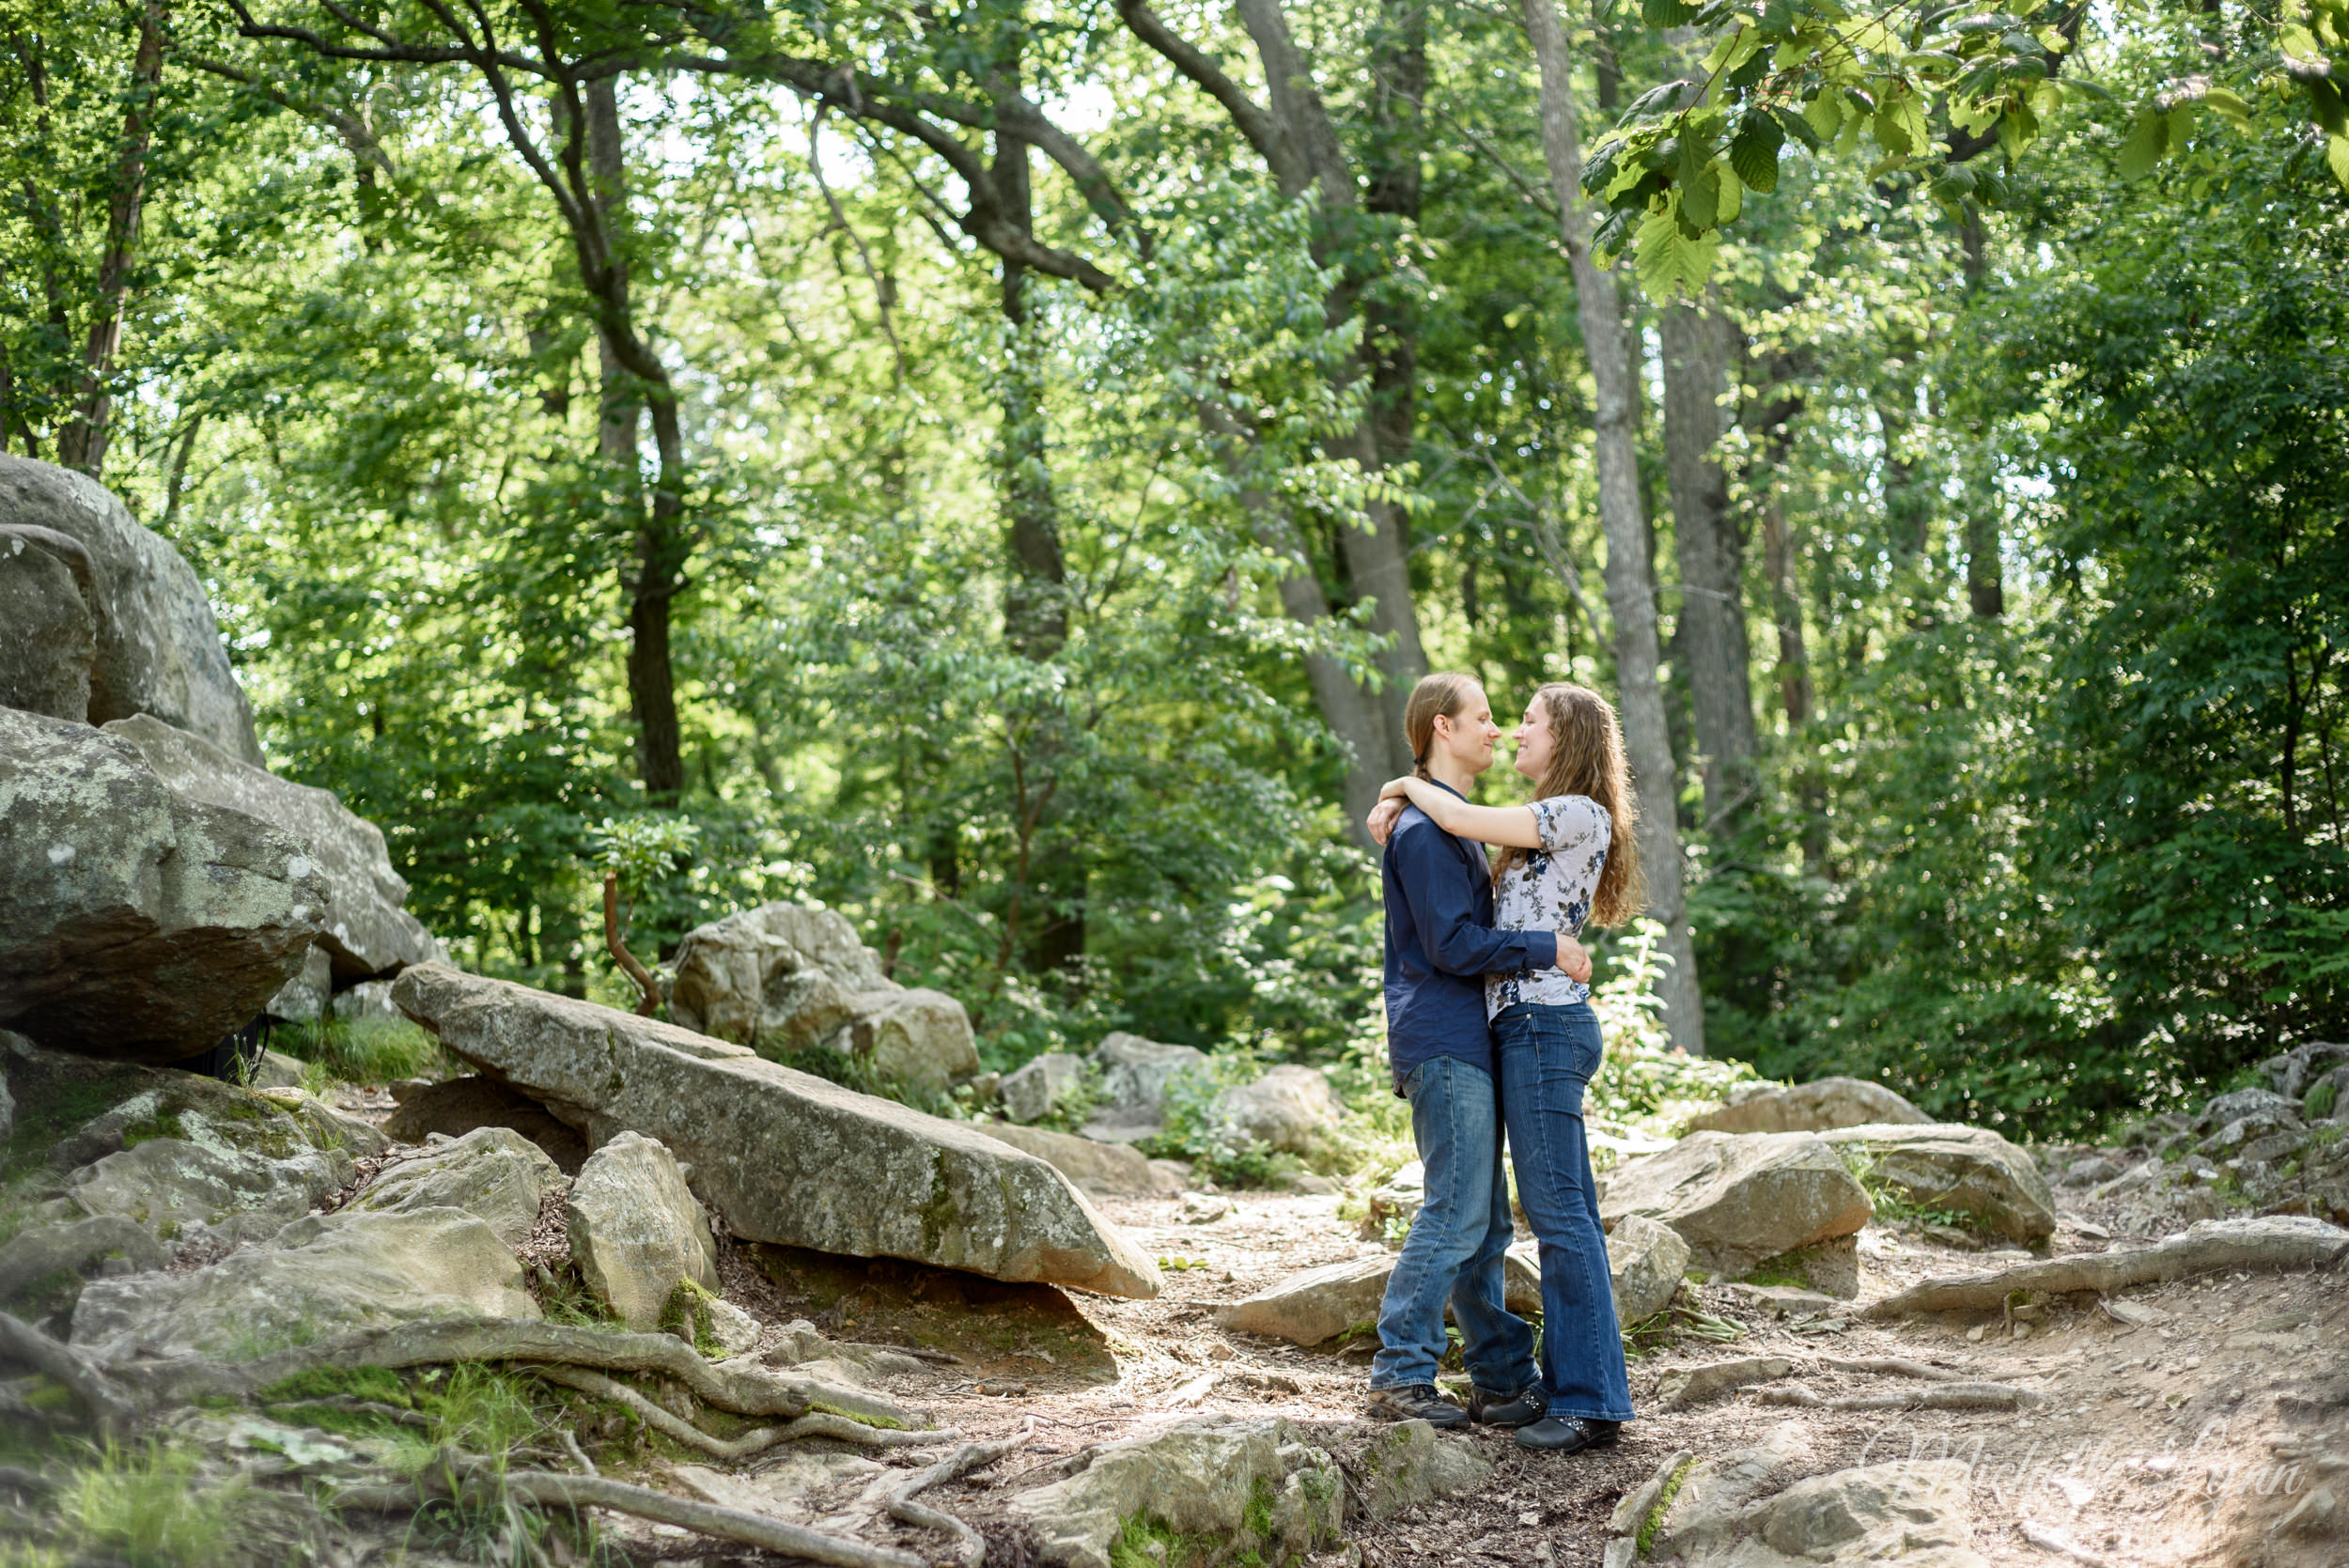 mlw-rocks-state-park-maryland-engagement-photos-12.jpg